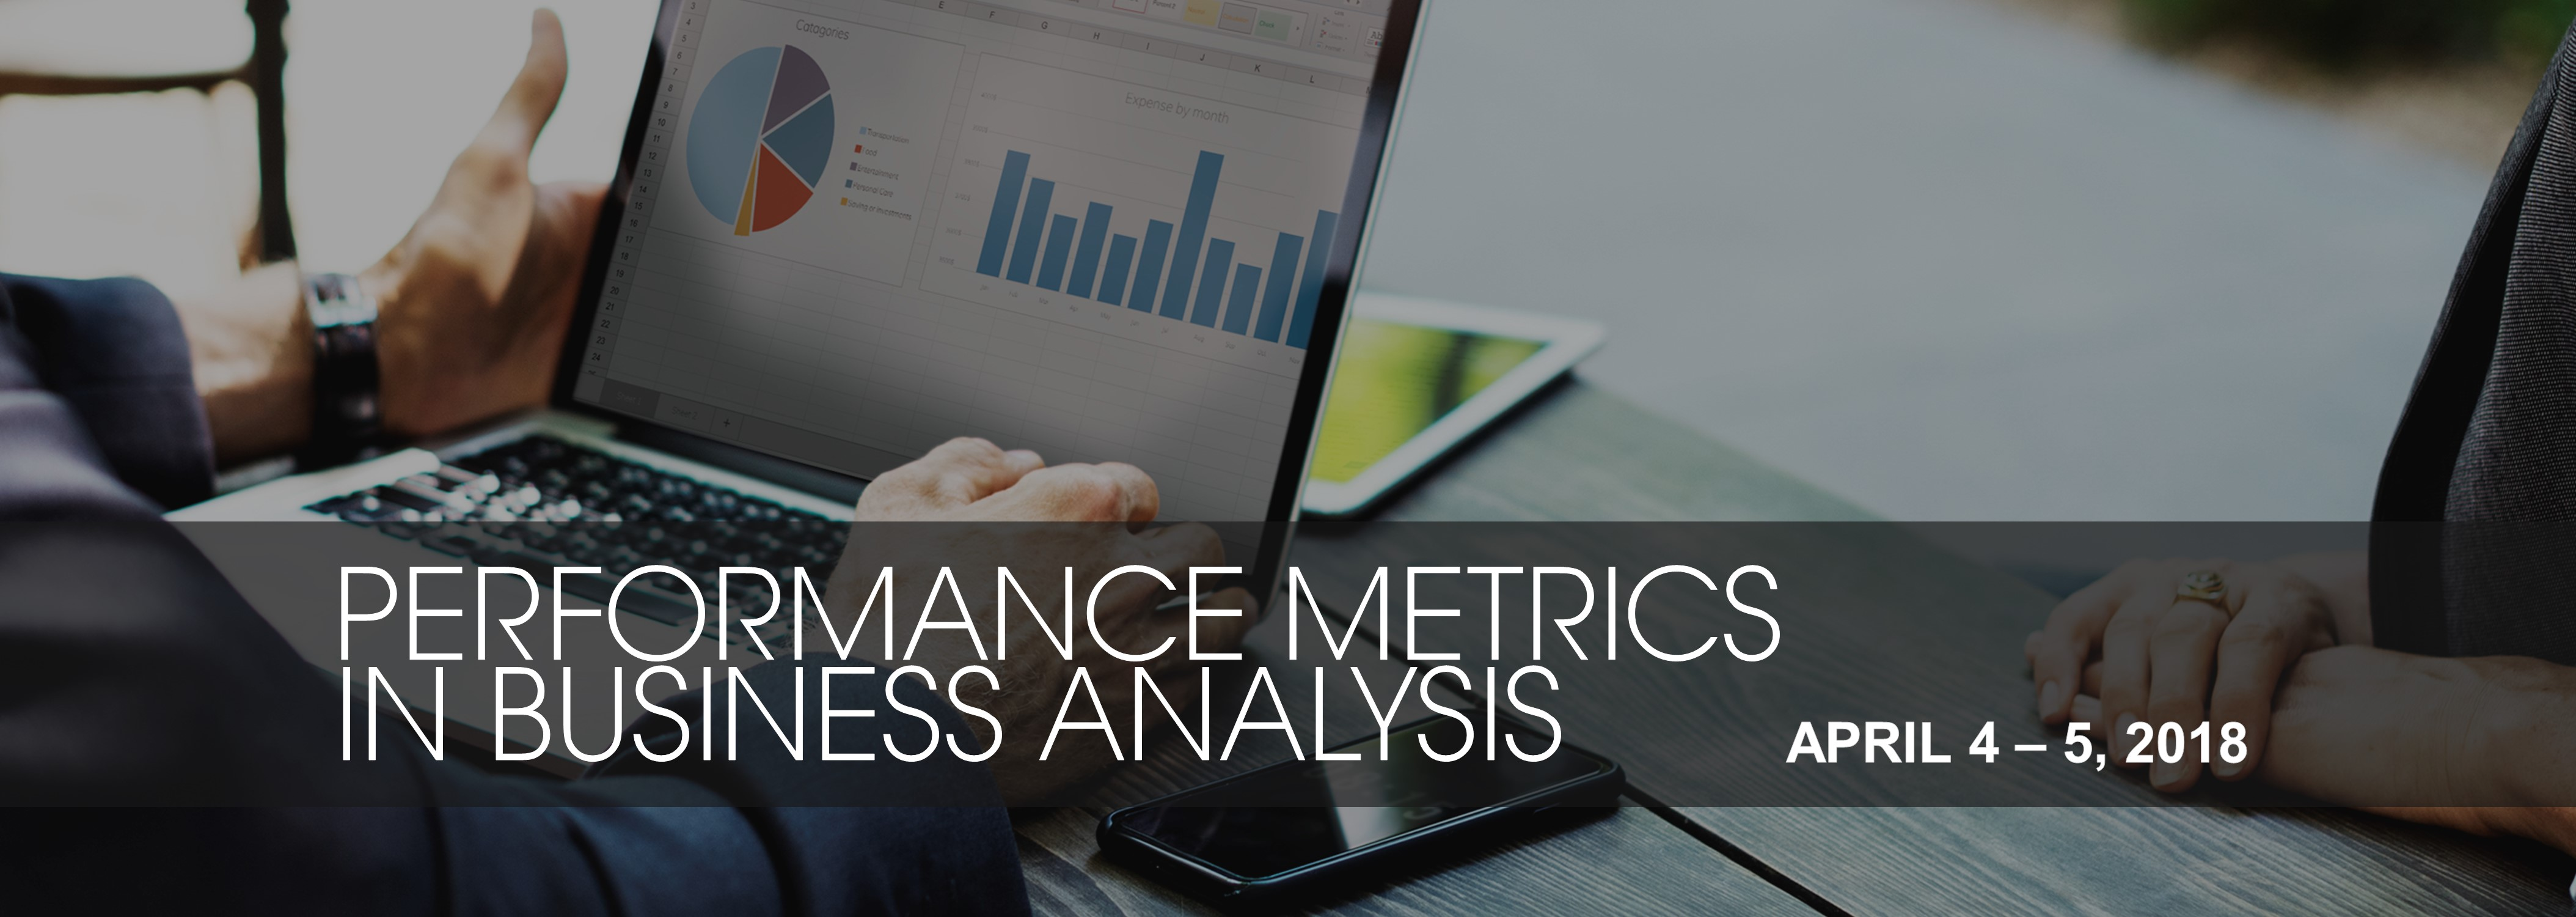 Performance Metrics in Business Analysis on April 4 - 5, 2018